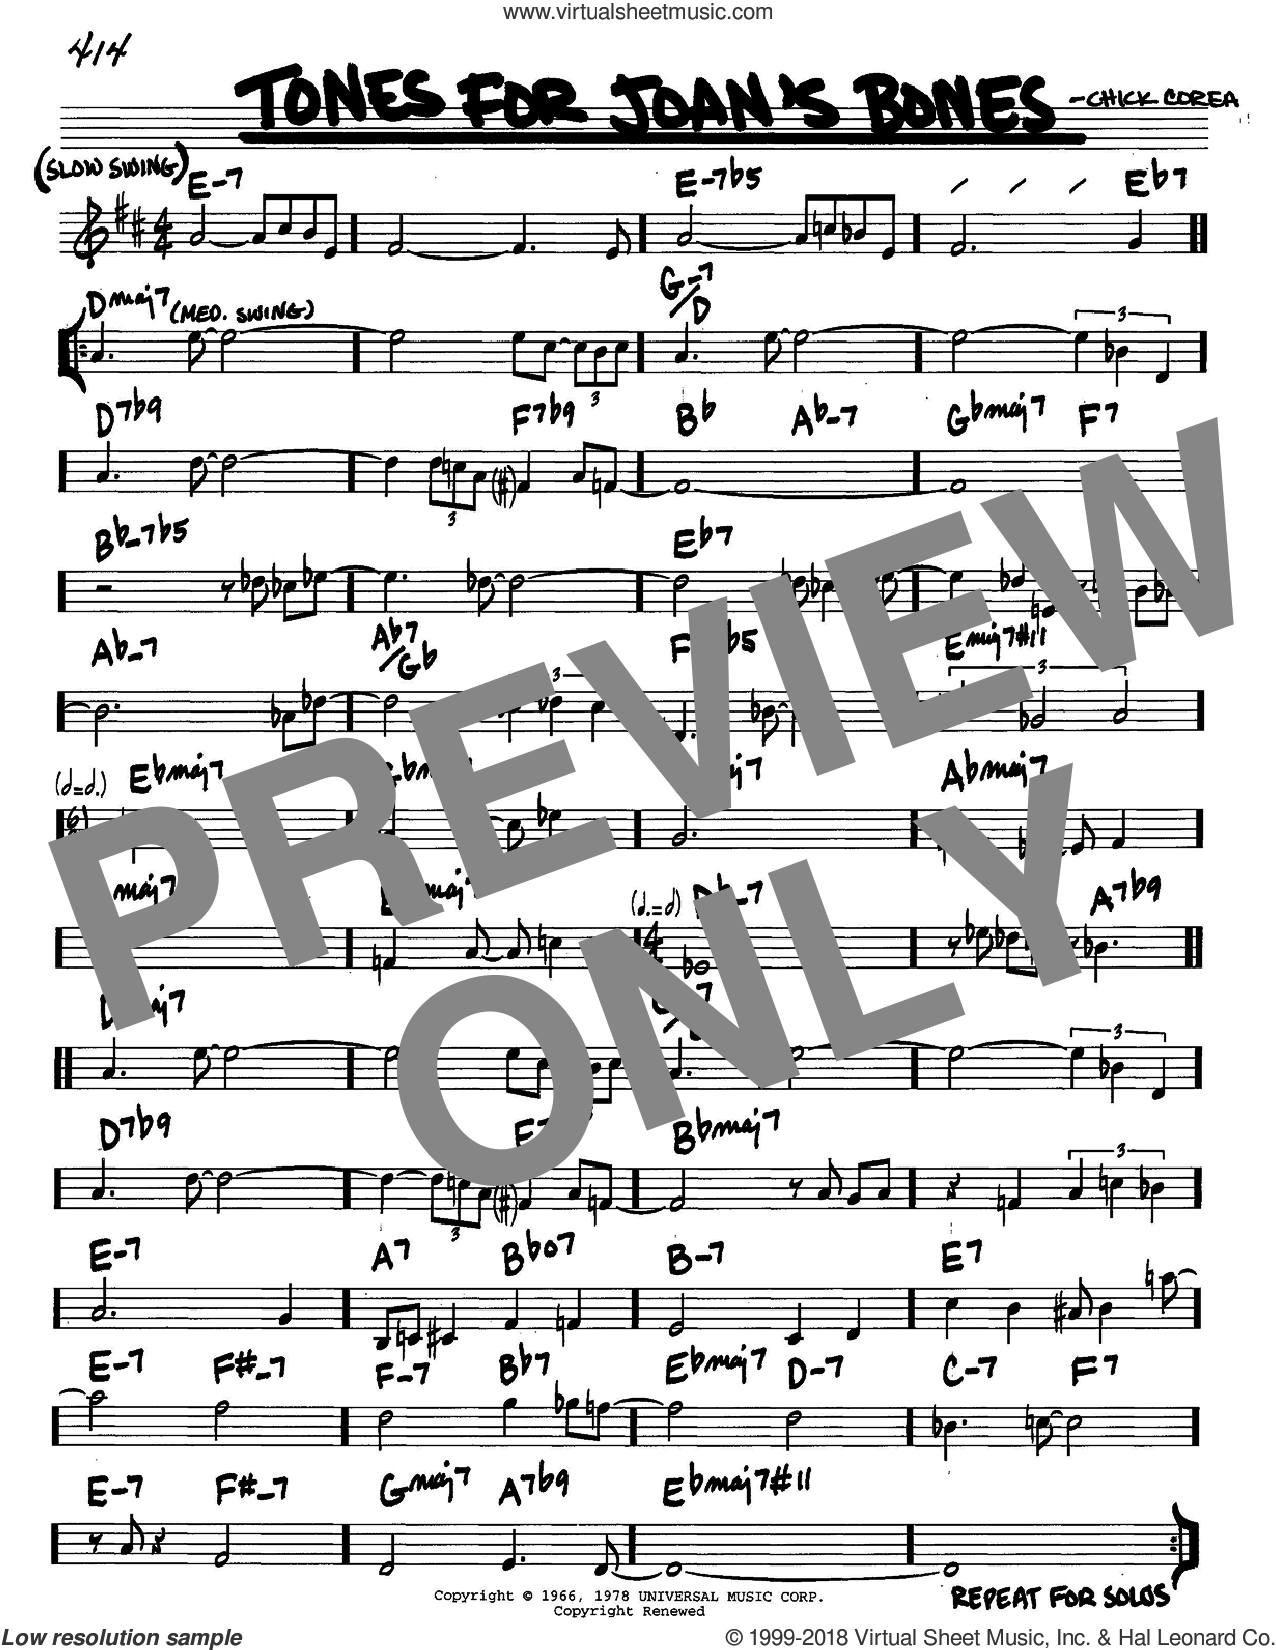 Tones For Joan's Bones sheet music for voice and other instruments (in C) by Chick Corea, intermediate skill level